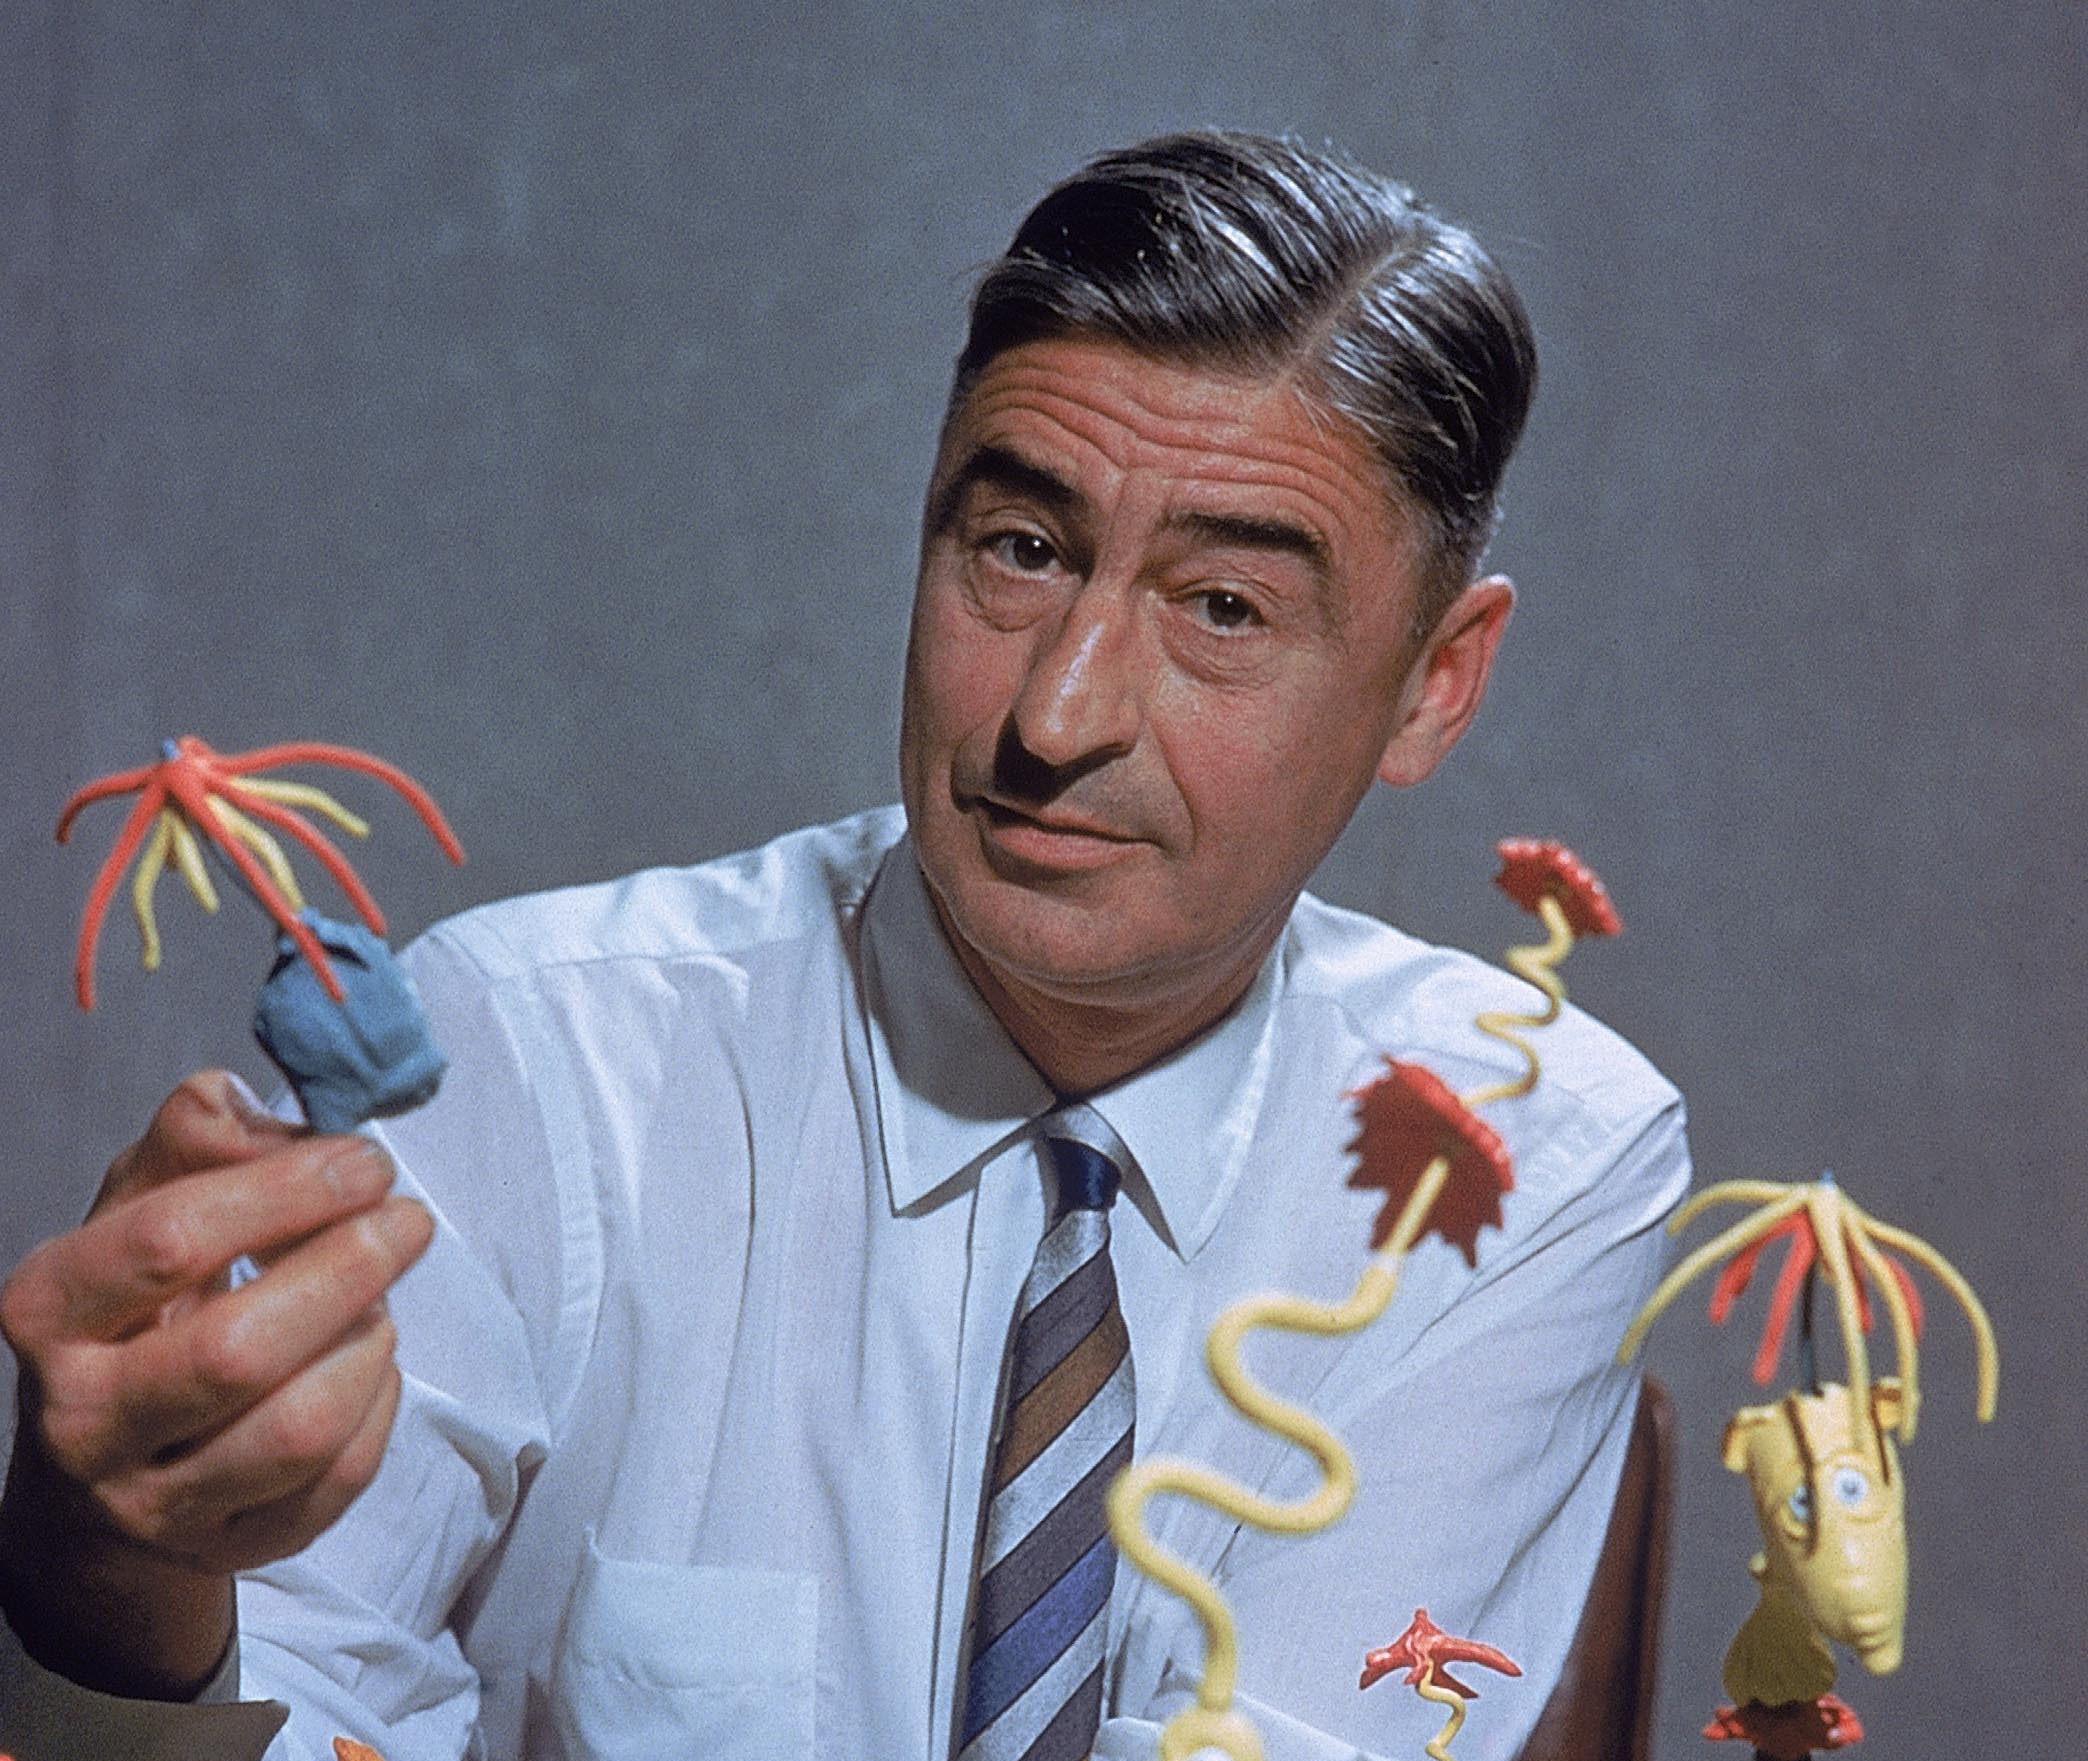 Dr Seuss Who Is He: What Was Dr. Seuss's First Book? It Launched His Entire